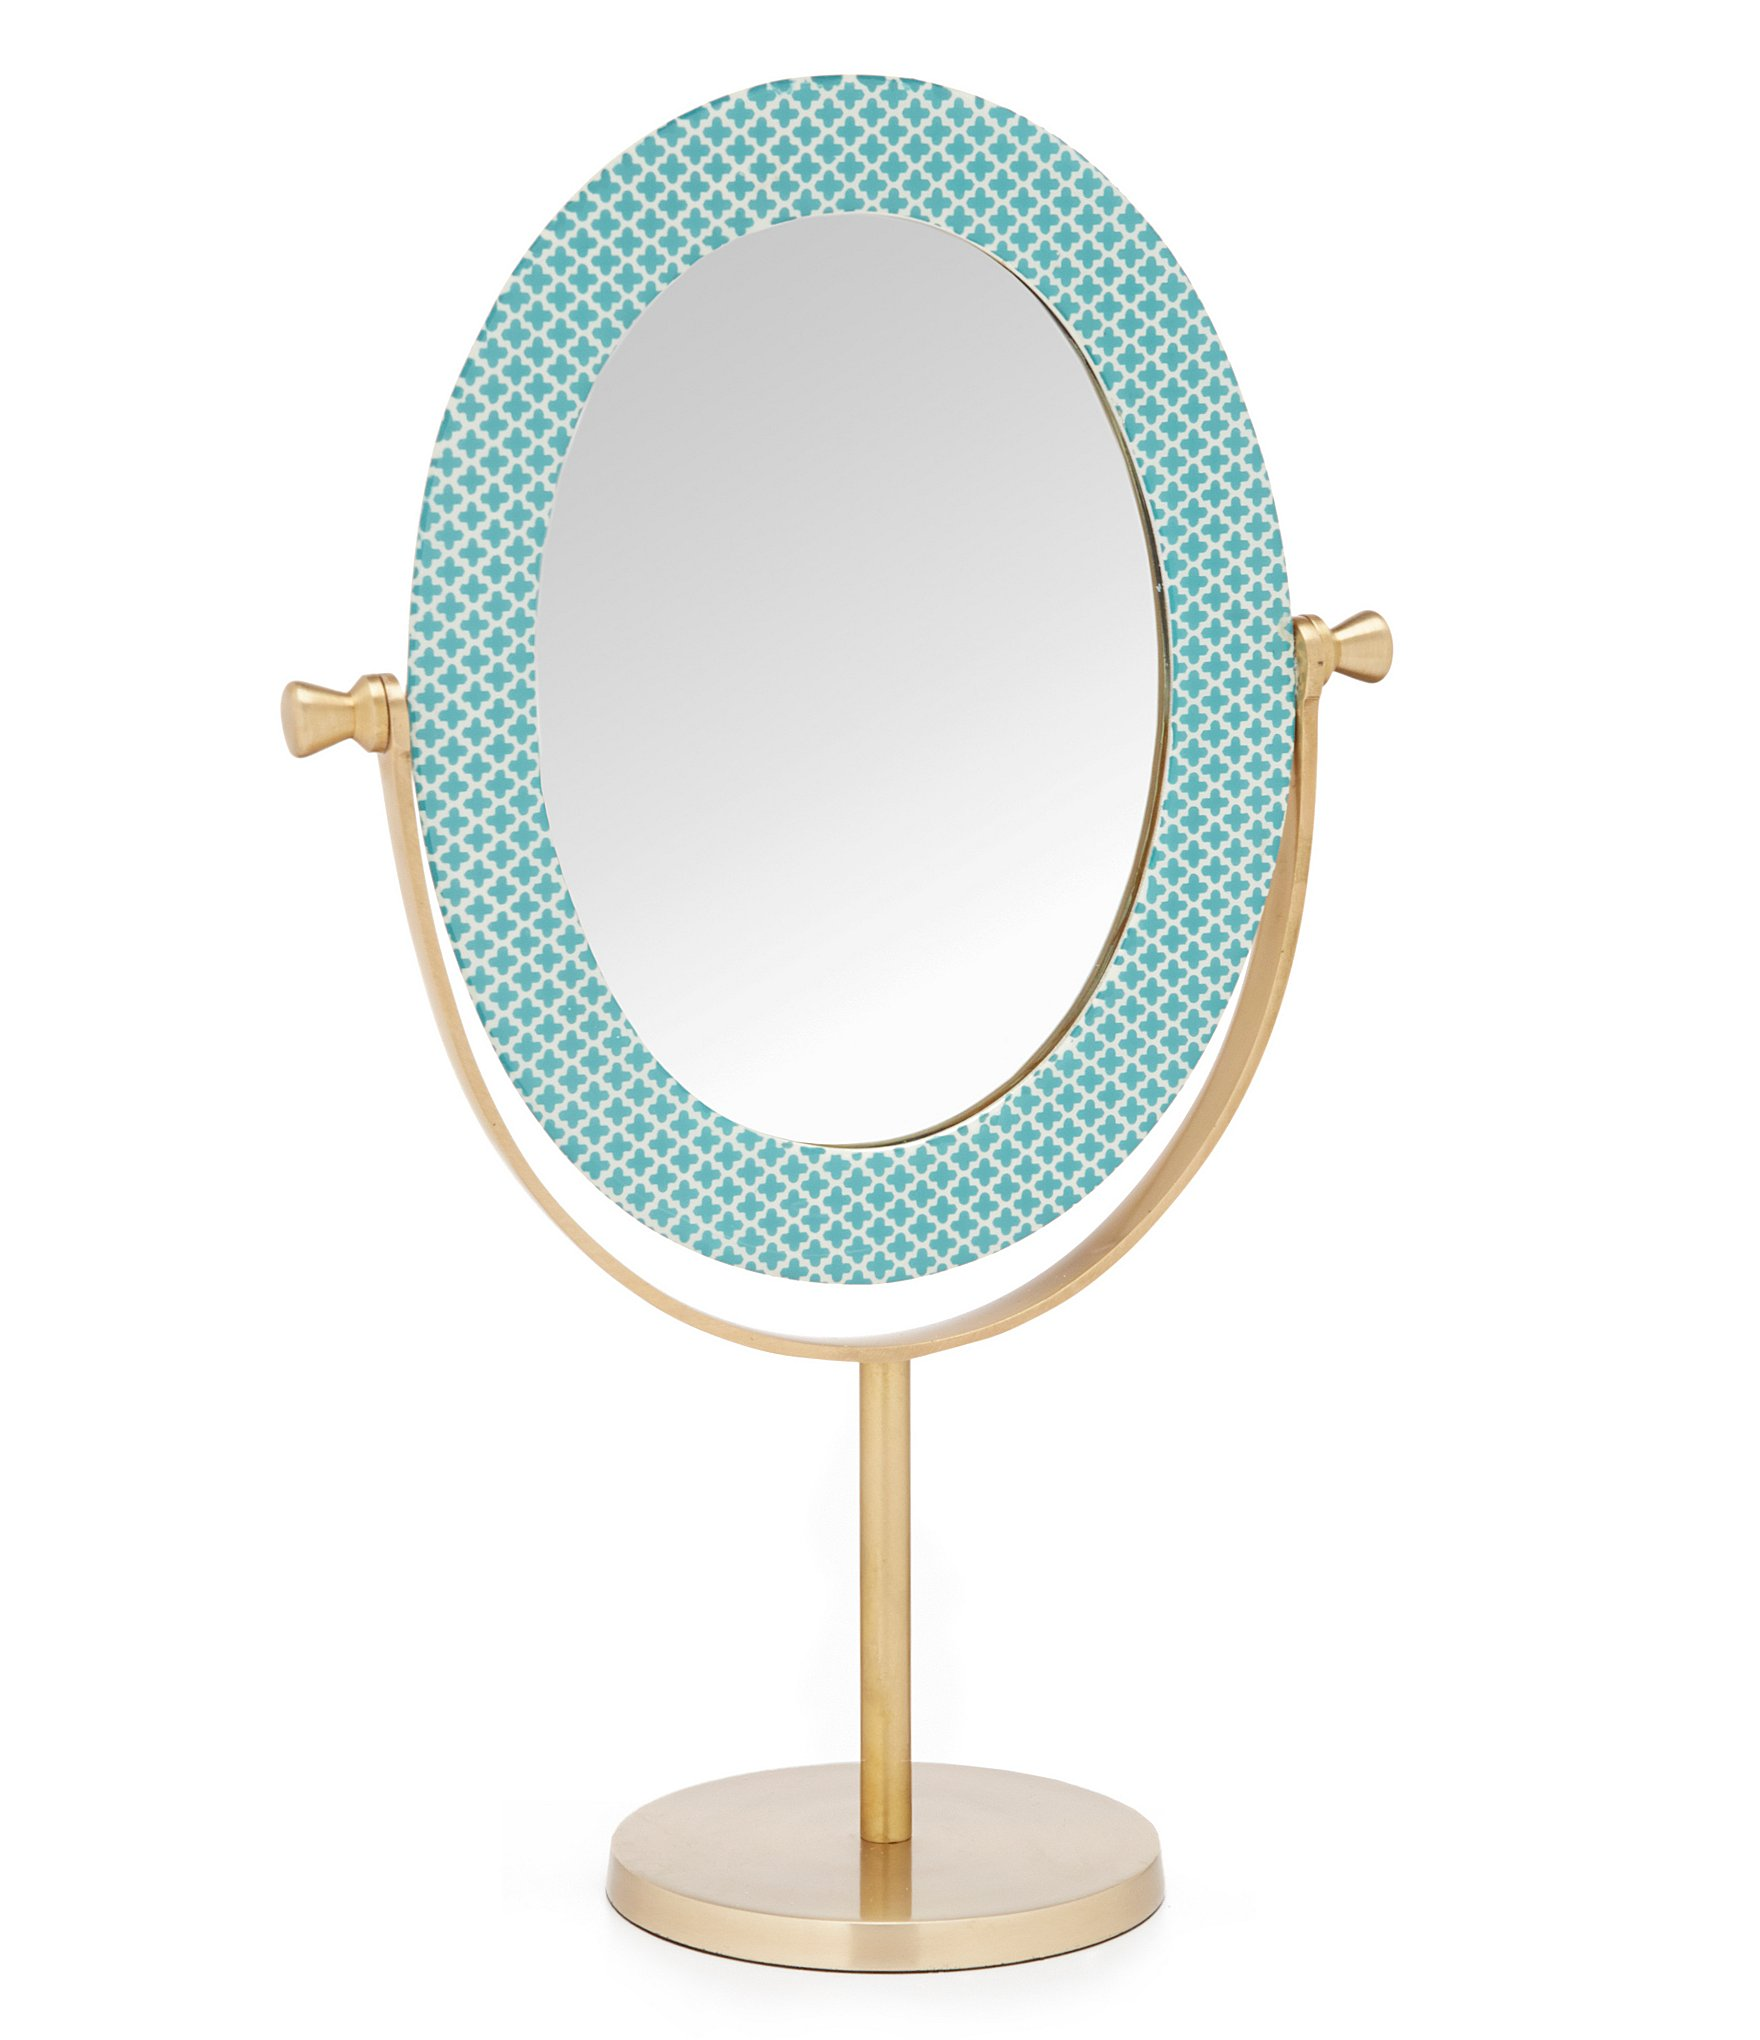 Fabric Tile Oval Mirror